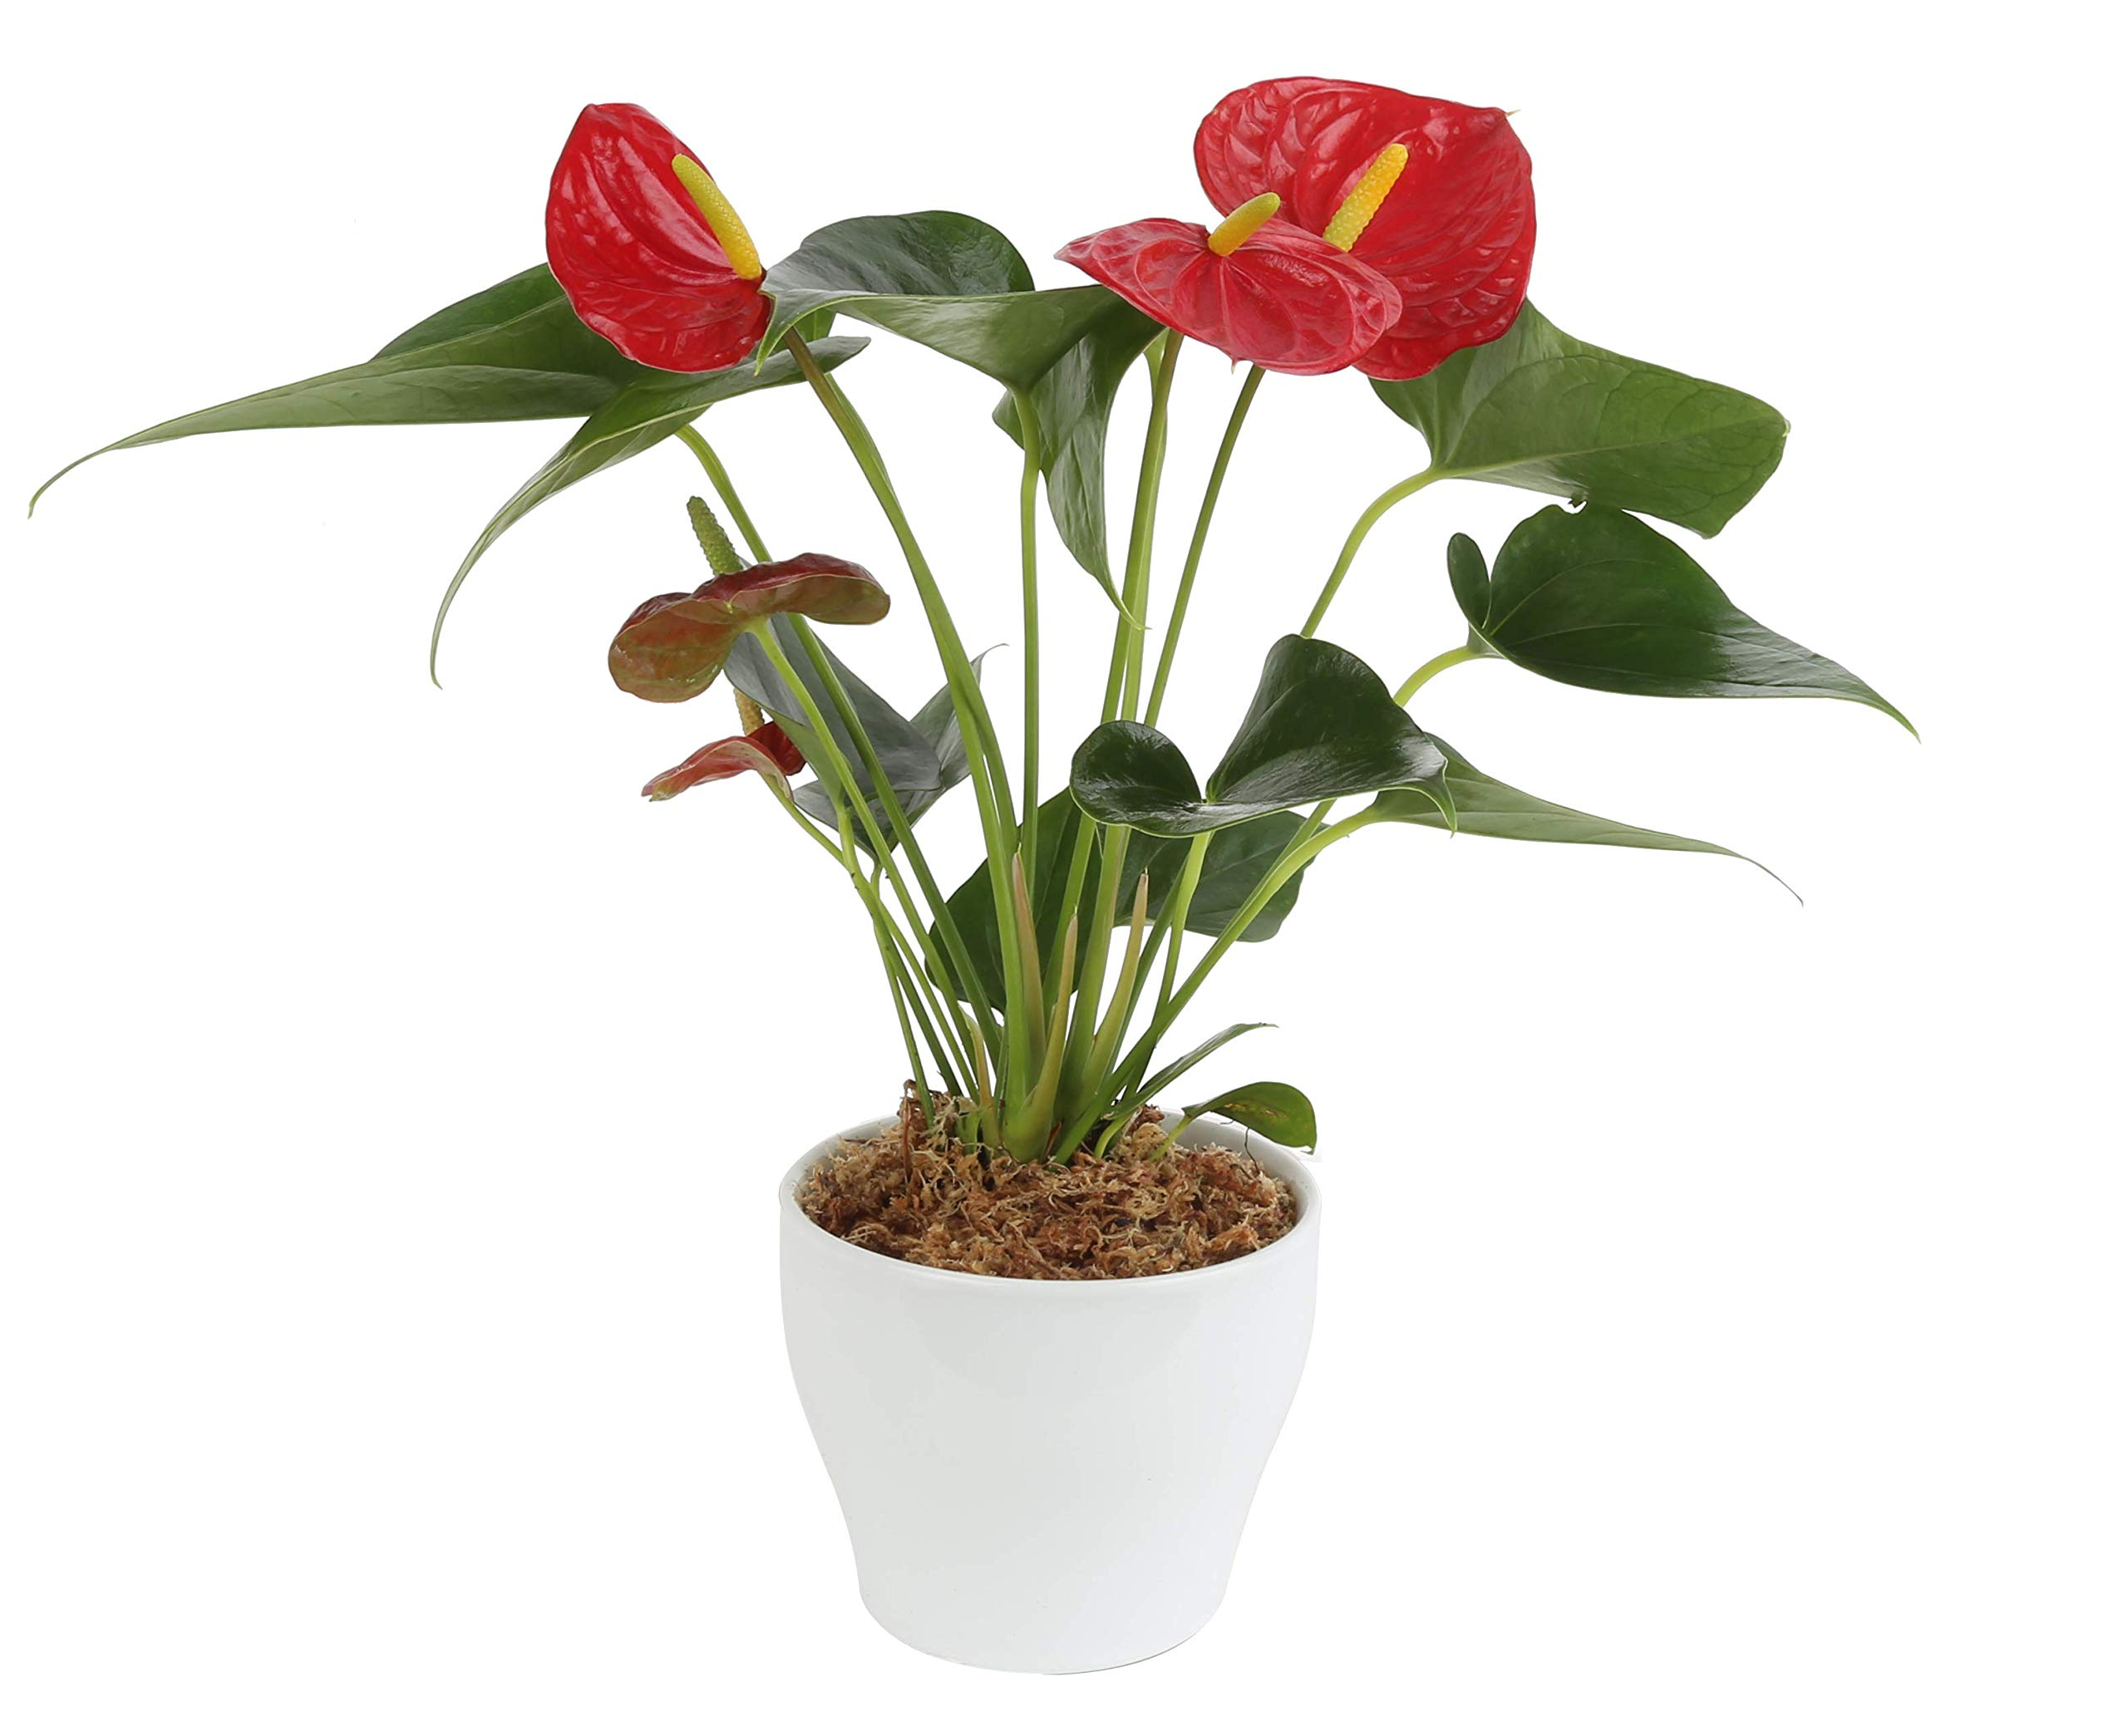 Costa Farms Blooming Anthurium, Live Indoor Plant, 12 to 14-Inches Tall, Ships in White Ceramic Planter, Great Gift, Fresh From Our Farm or Home Décor by Costa Farms